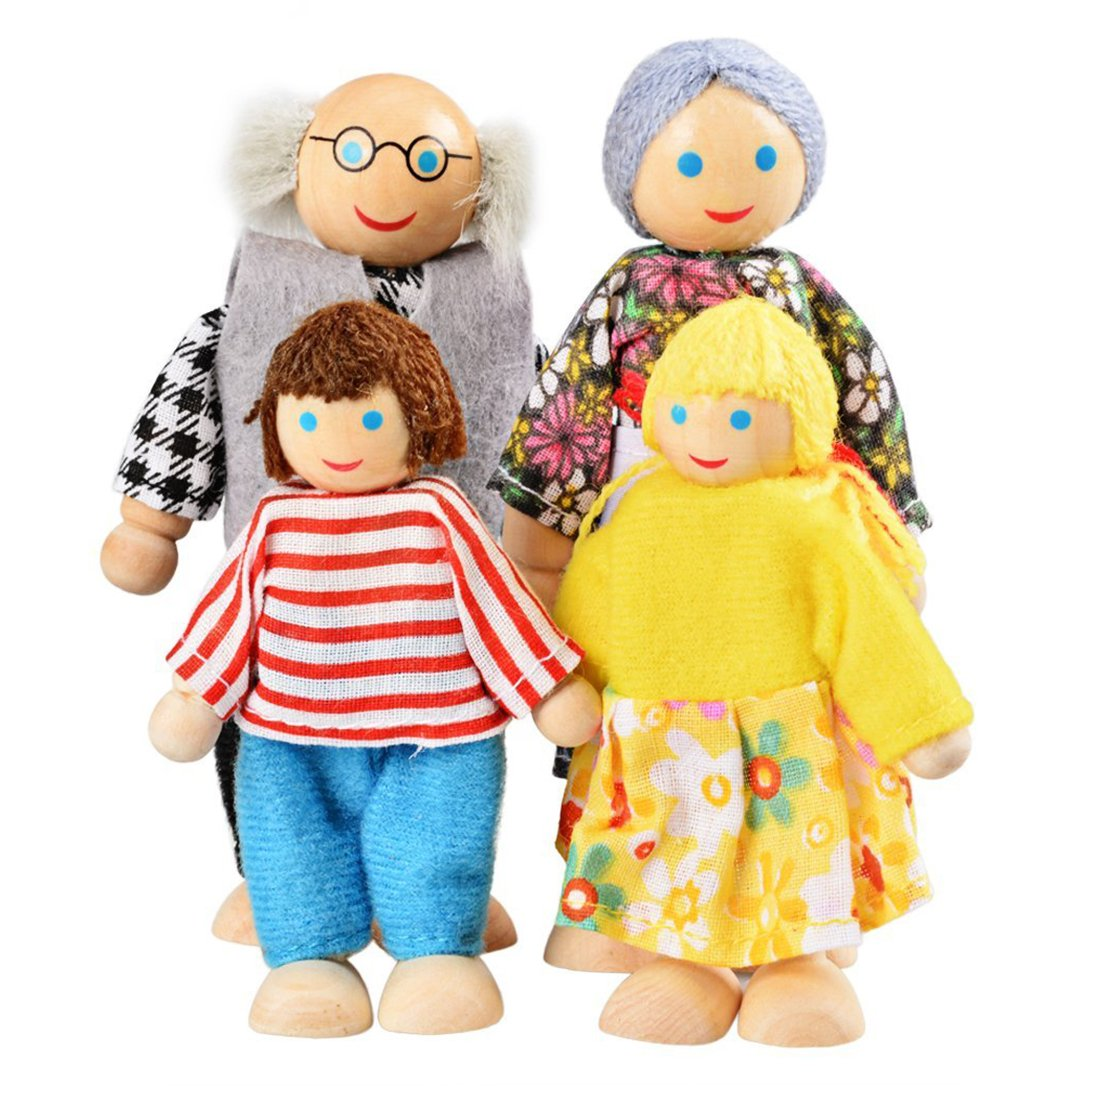 Happy Doll Family Of 4 People Dolls & Stuffed Toys Dolls